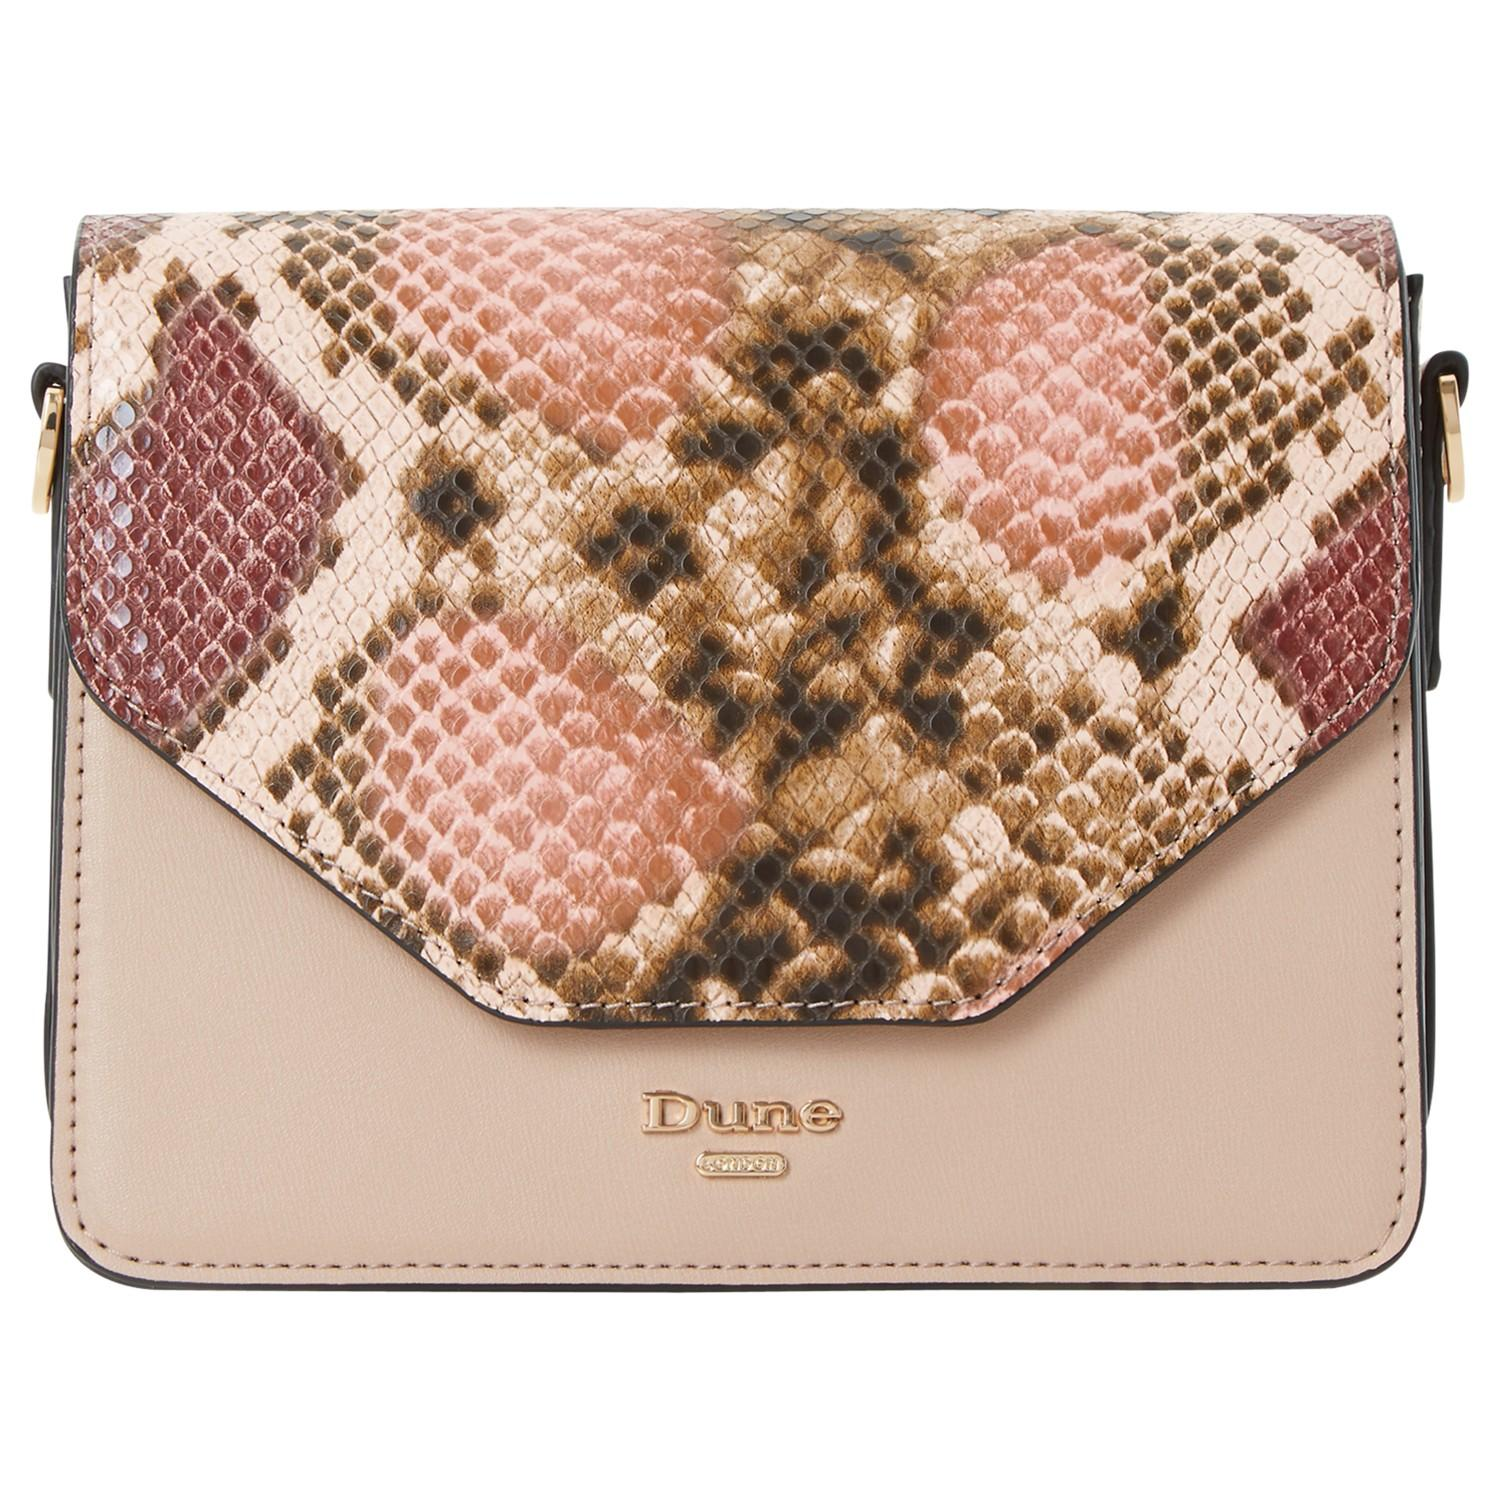 44f41df320e1 Dune Etwo Clutch Bag - Lyst